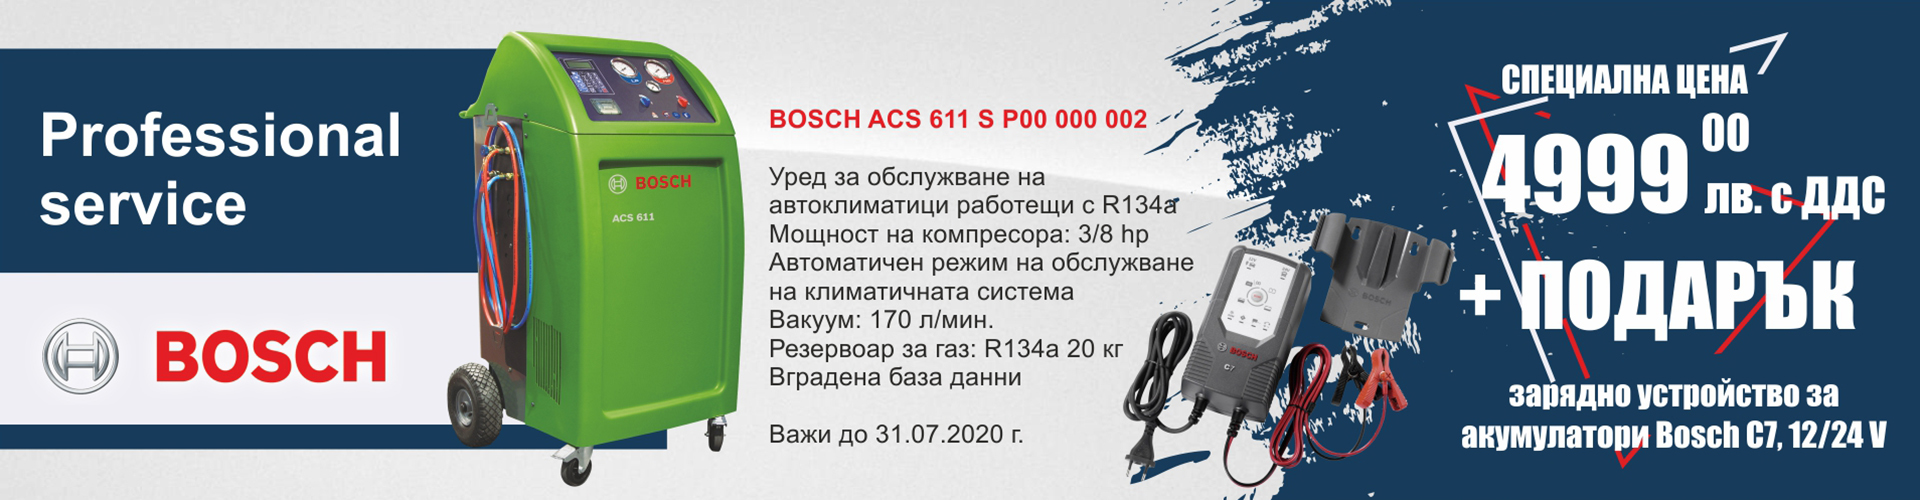 promo_bosch_acs611_do_31.07.2020_banner.jpg